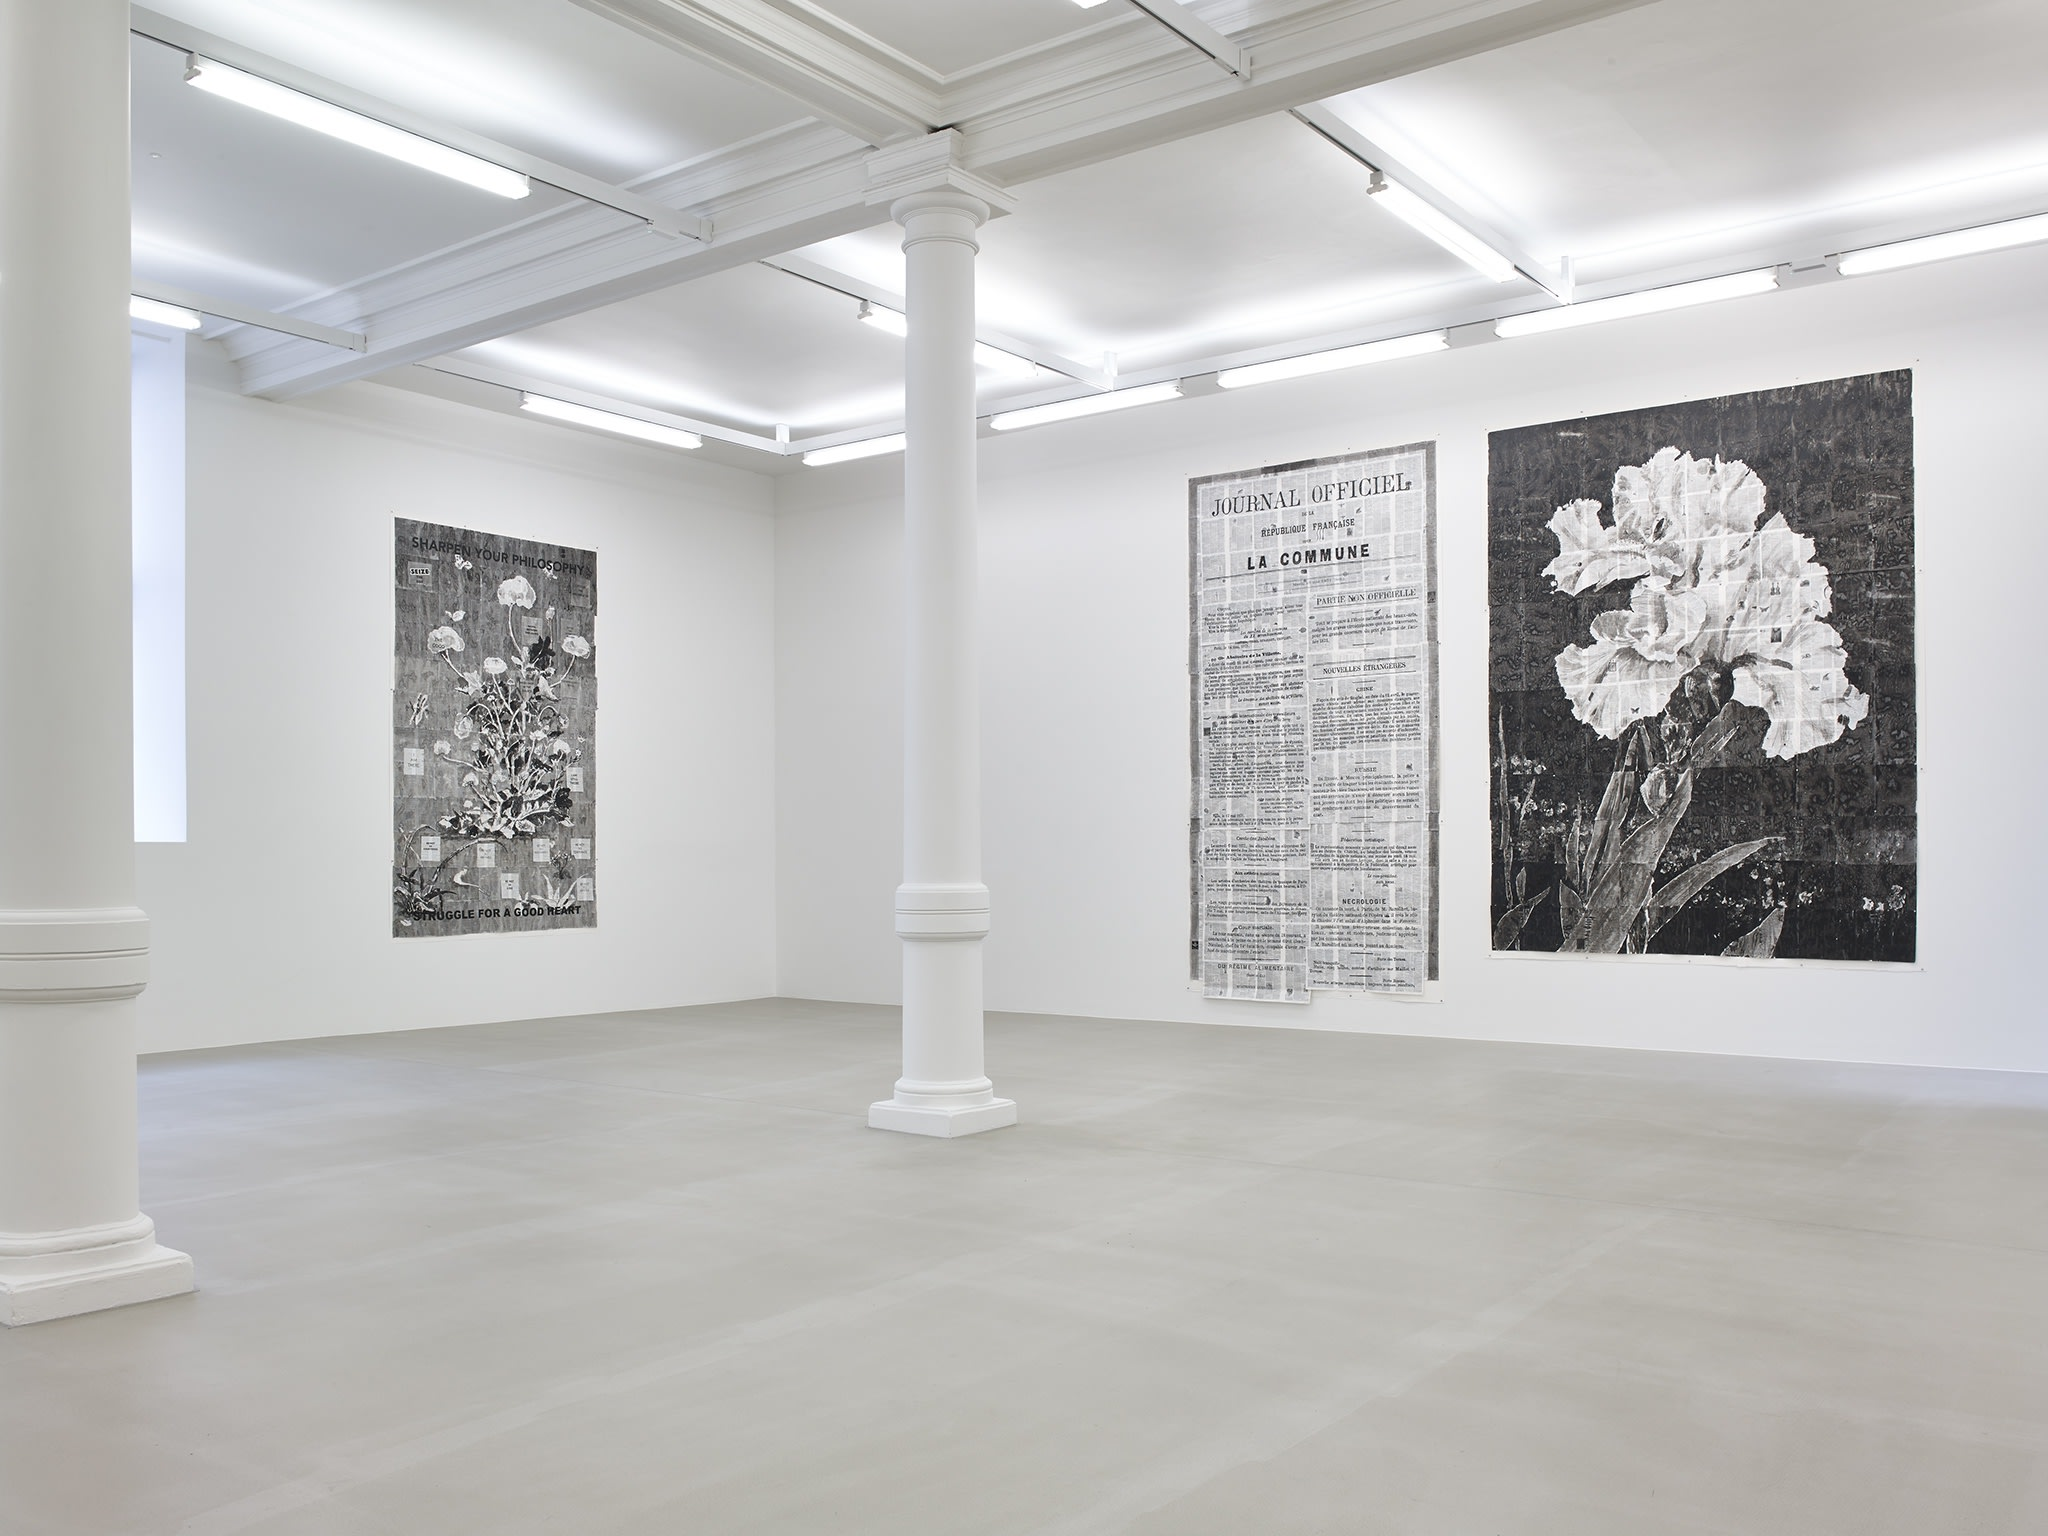 In a large white space with columns, three large black and white paintings hang, all made up of many small pieces of paper. On the left wall, a bush of flowers. On the right wall, a french newspaper (JOURNAL OFFICIEL), and a large Iris flower.